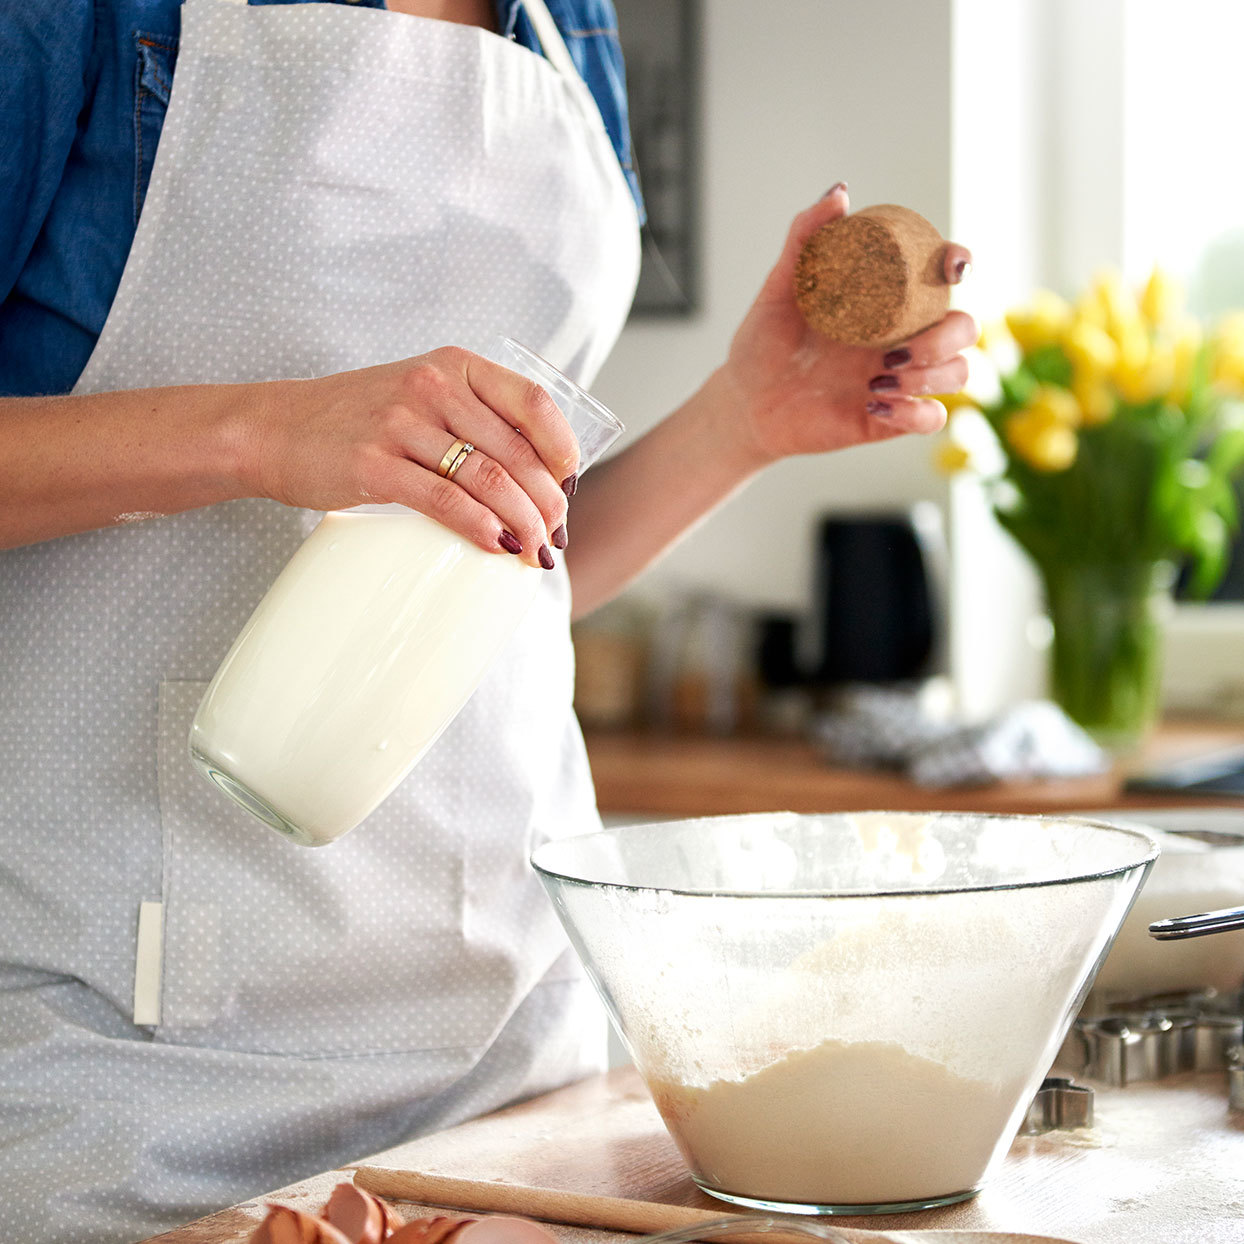 What Is Buttermilk and What Can I Substitute for It?